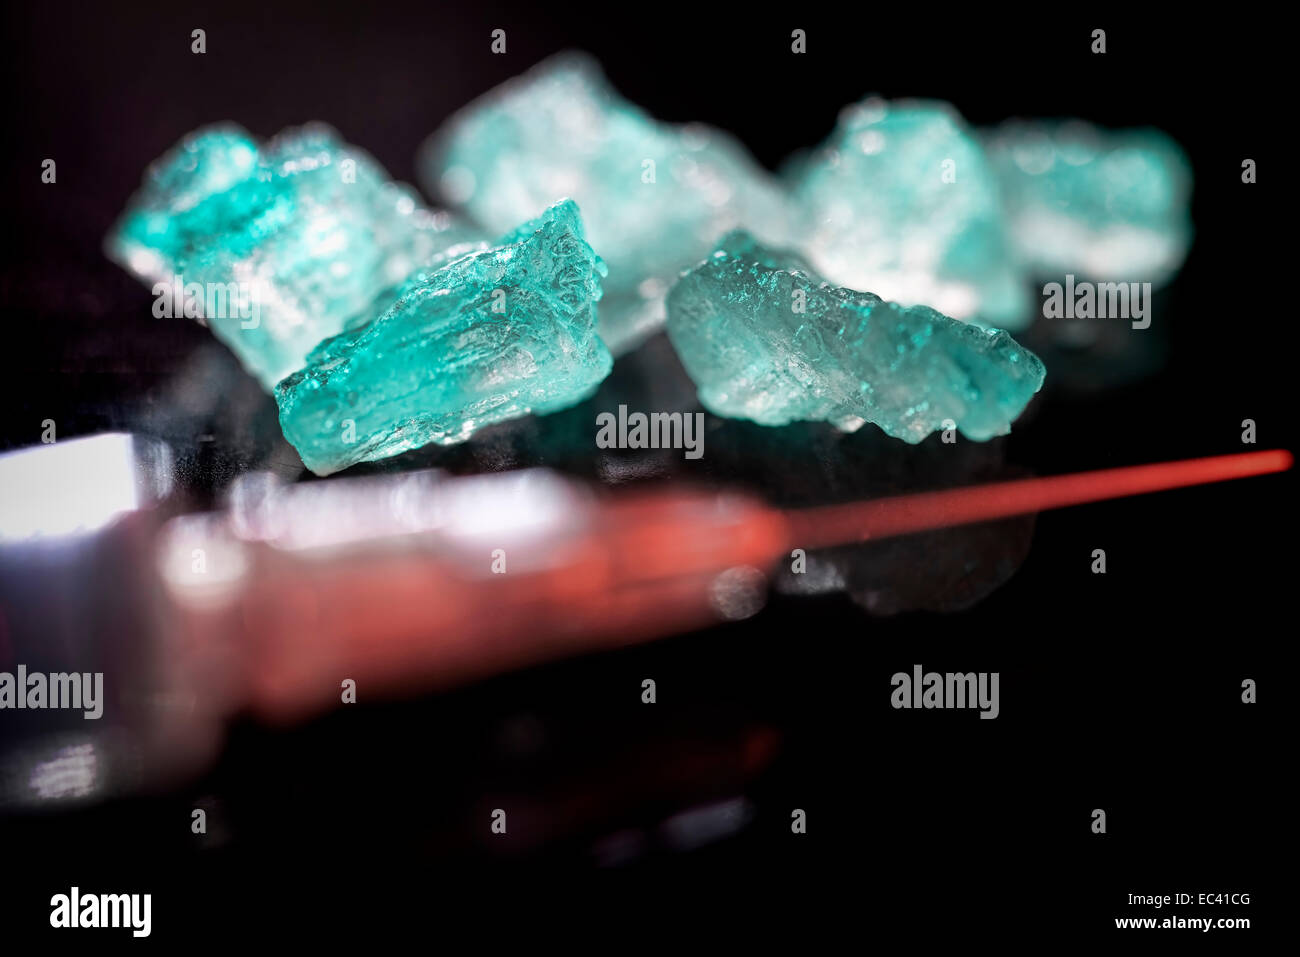 Crystal meth, symbolic picture - Stock Image